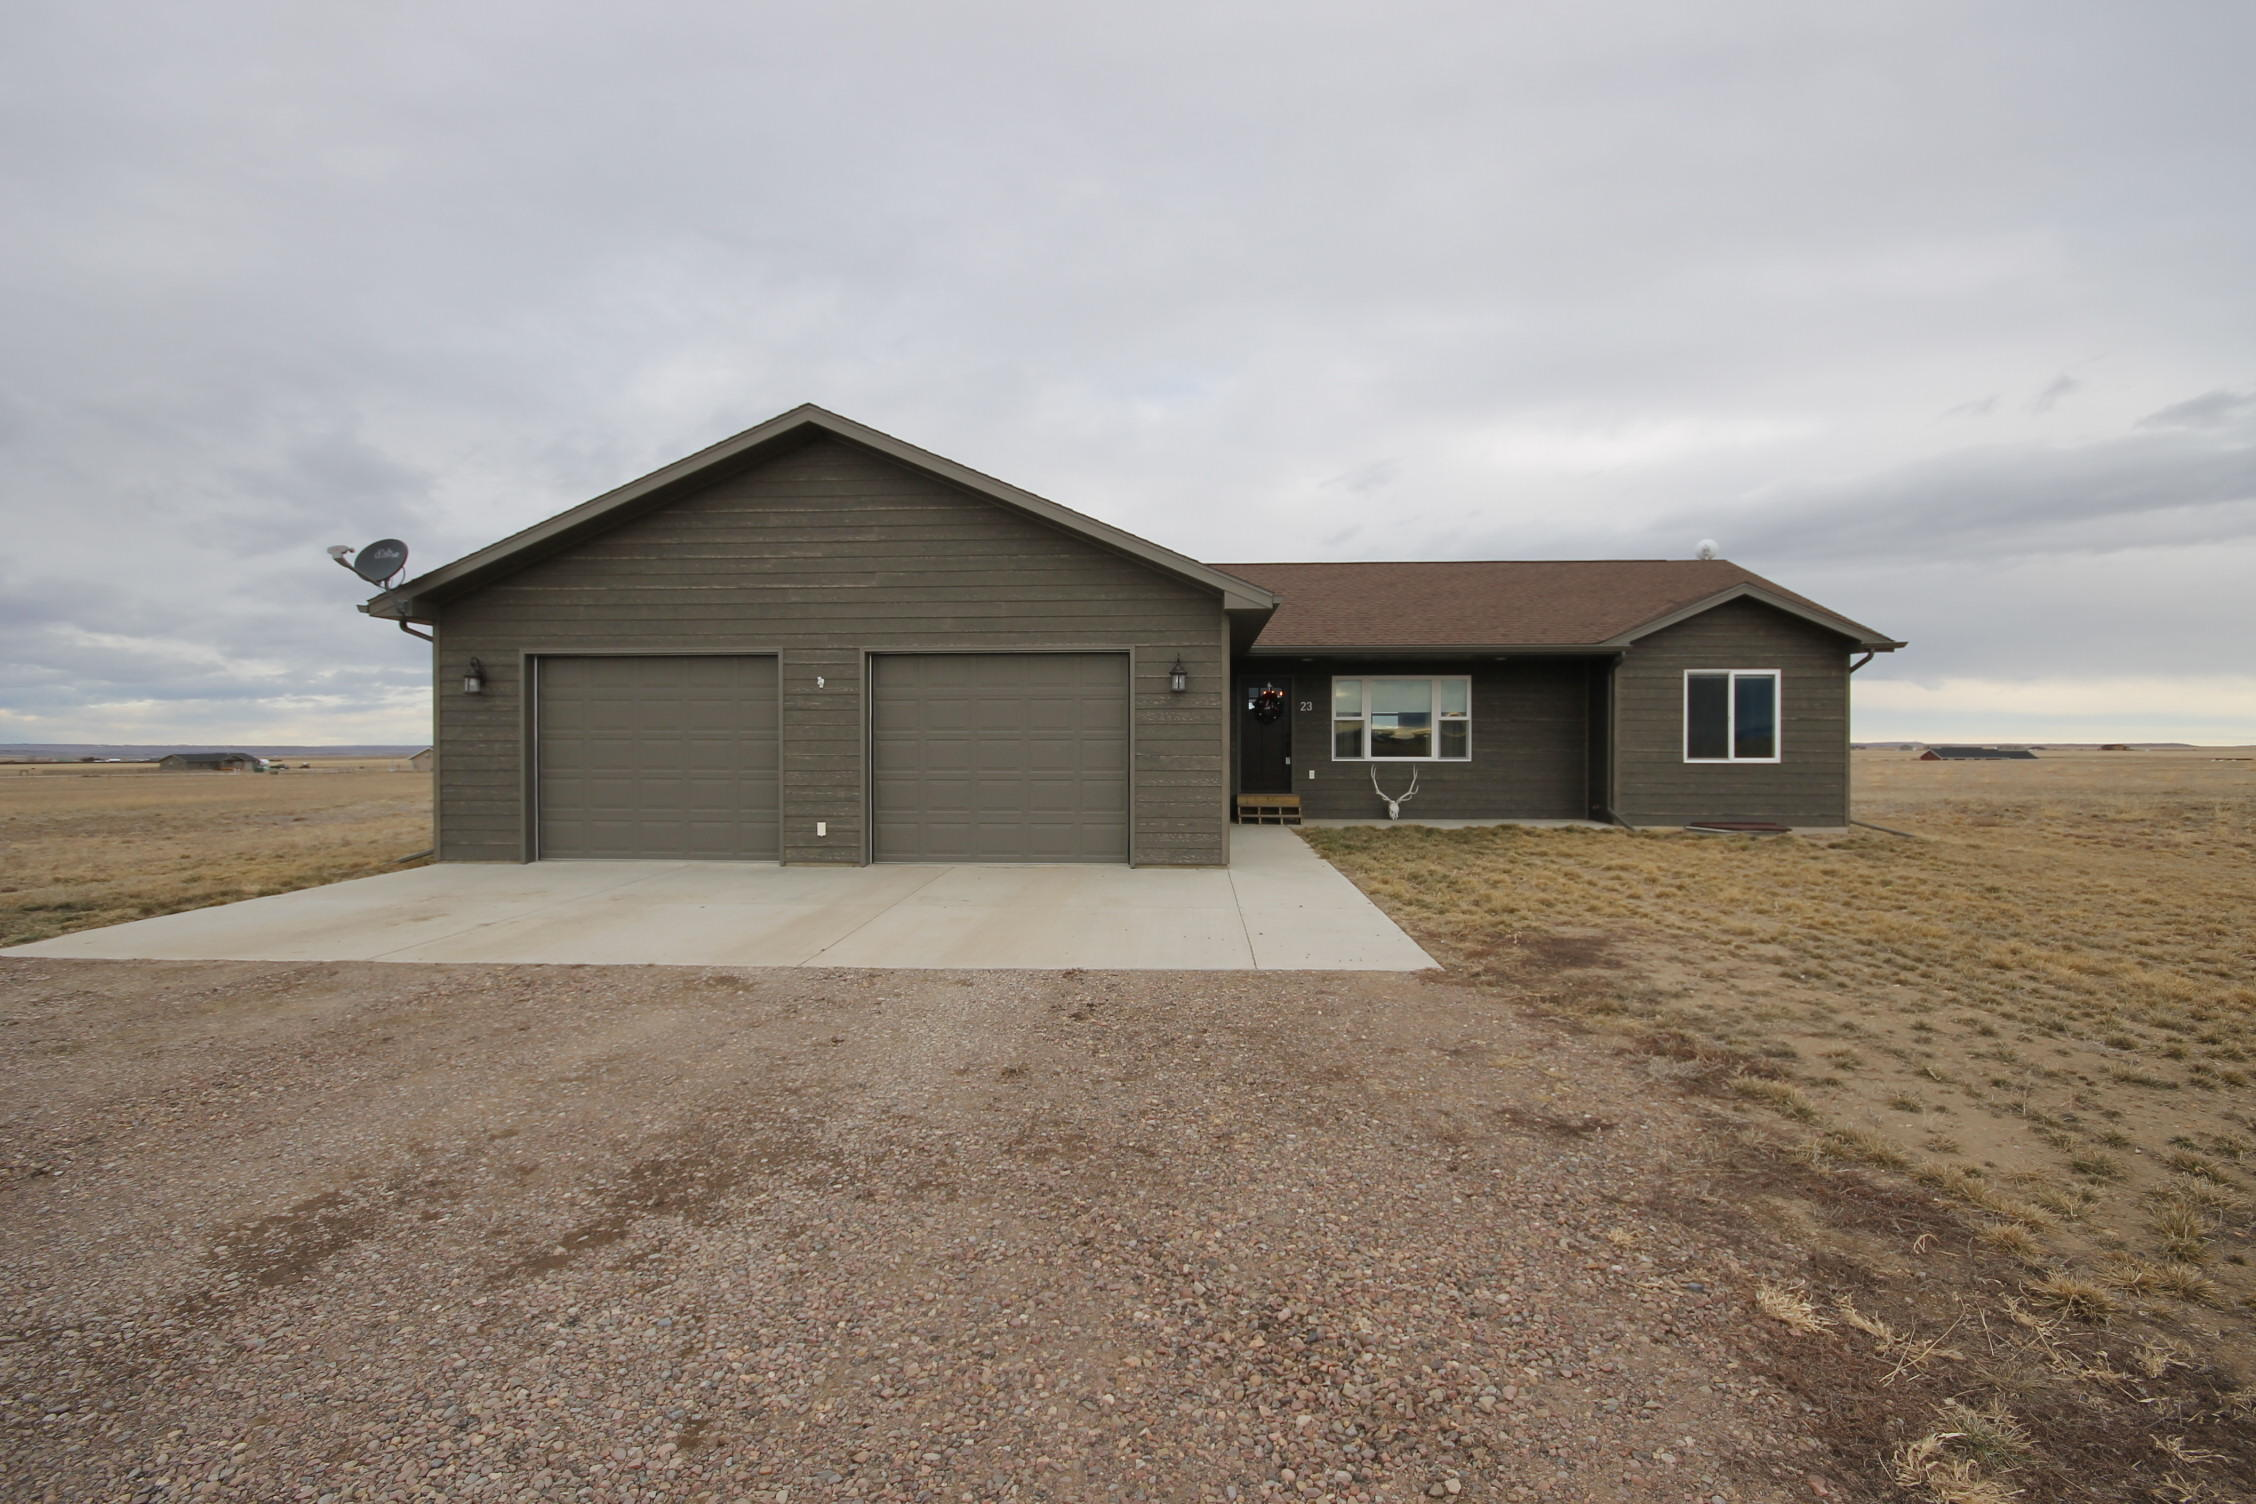 Immaculately cared for almost new construction on 5 acres. Wonderfully planned open layout with tiled bathrooms, eye catching fixtures and much more. The basement is ready to be finished with a tub/shower, rough plumbed bath and walls. Easy care drought resistant lawn and wonderful views! HOA covers road maintenance of weed spraying, grading and snow removal.